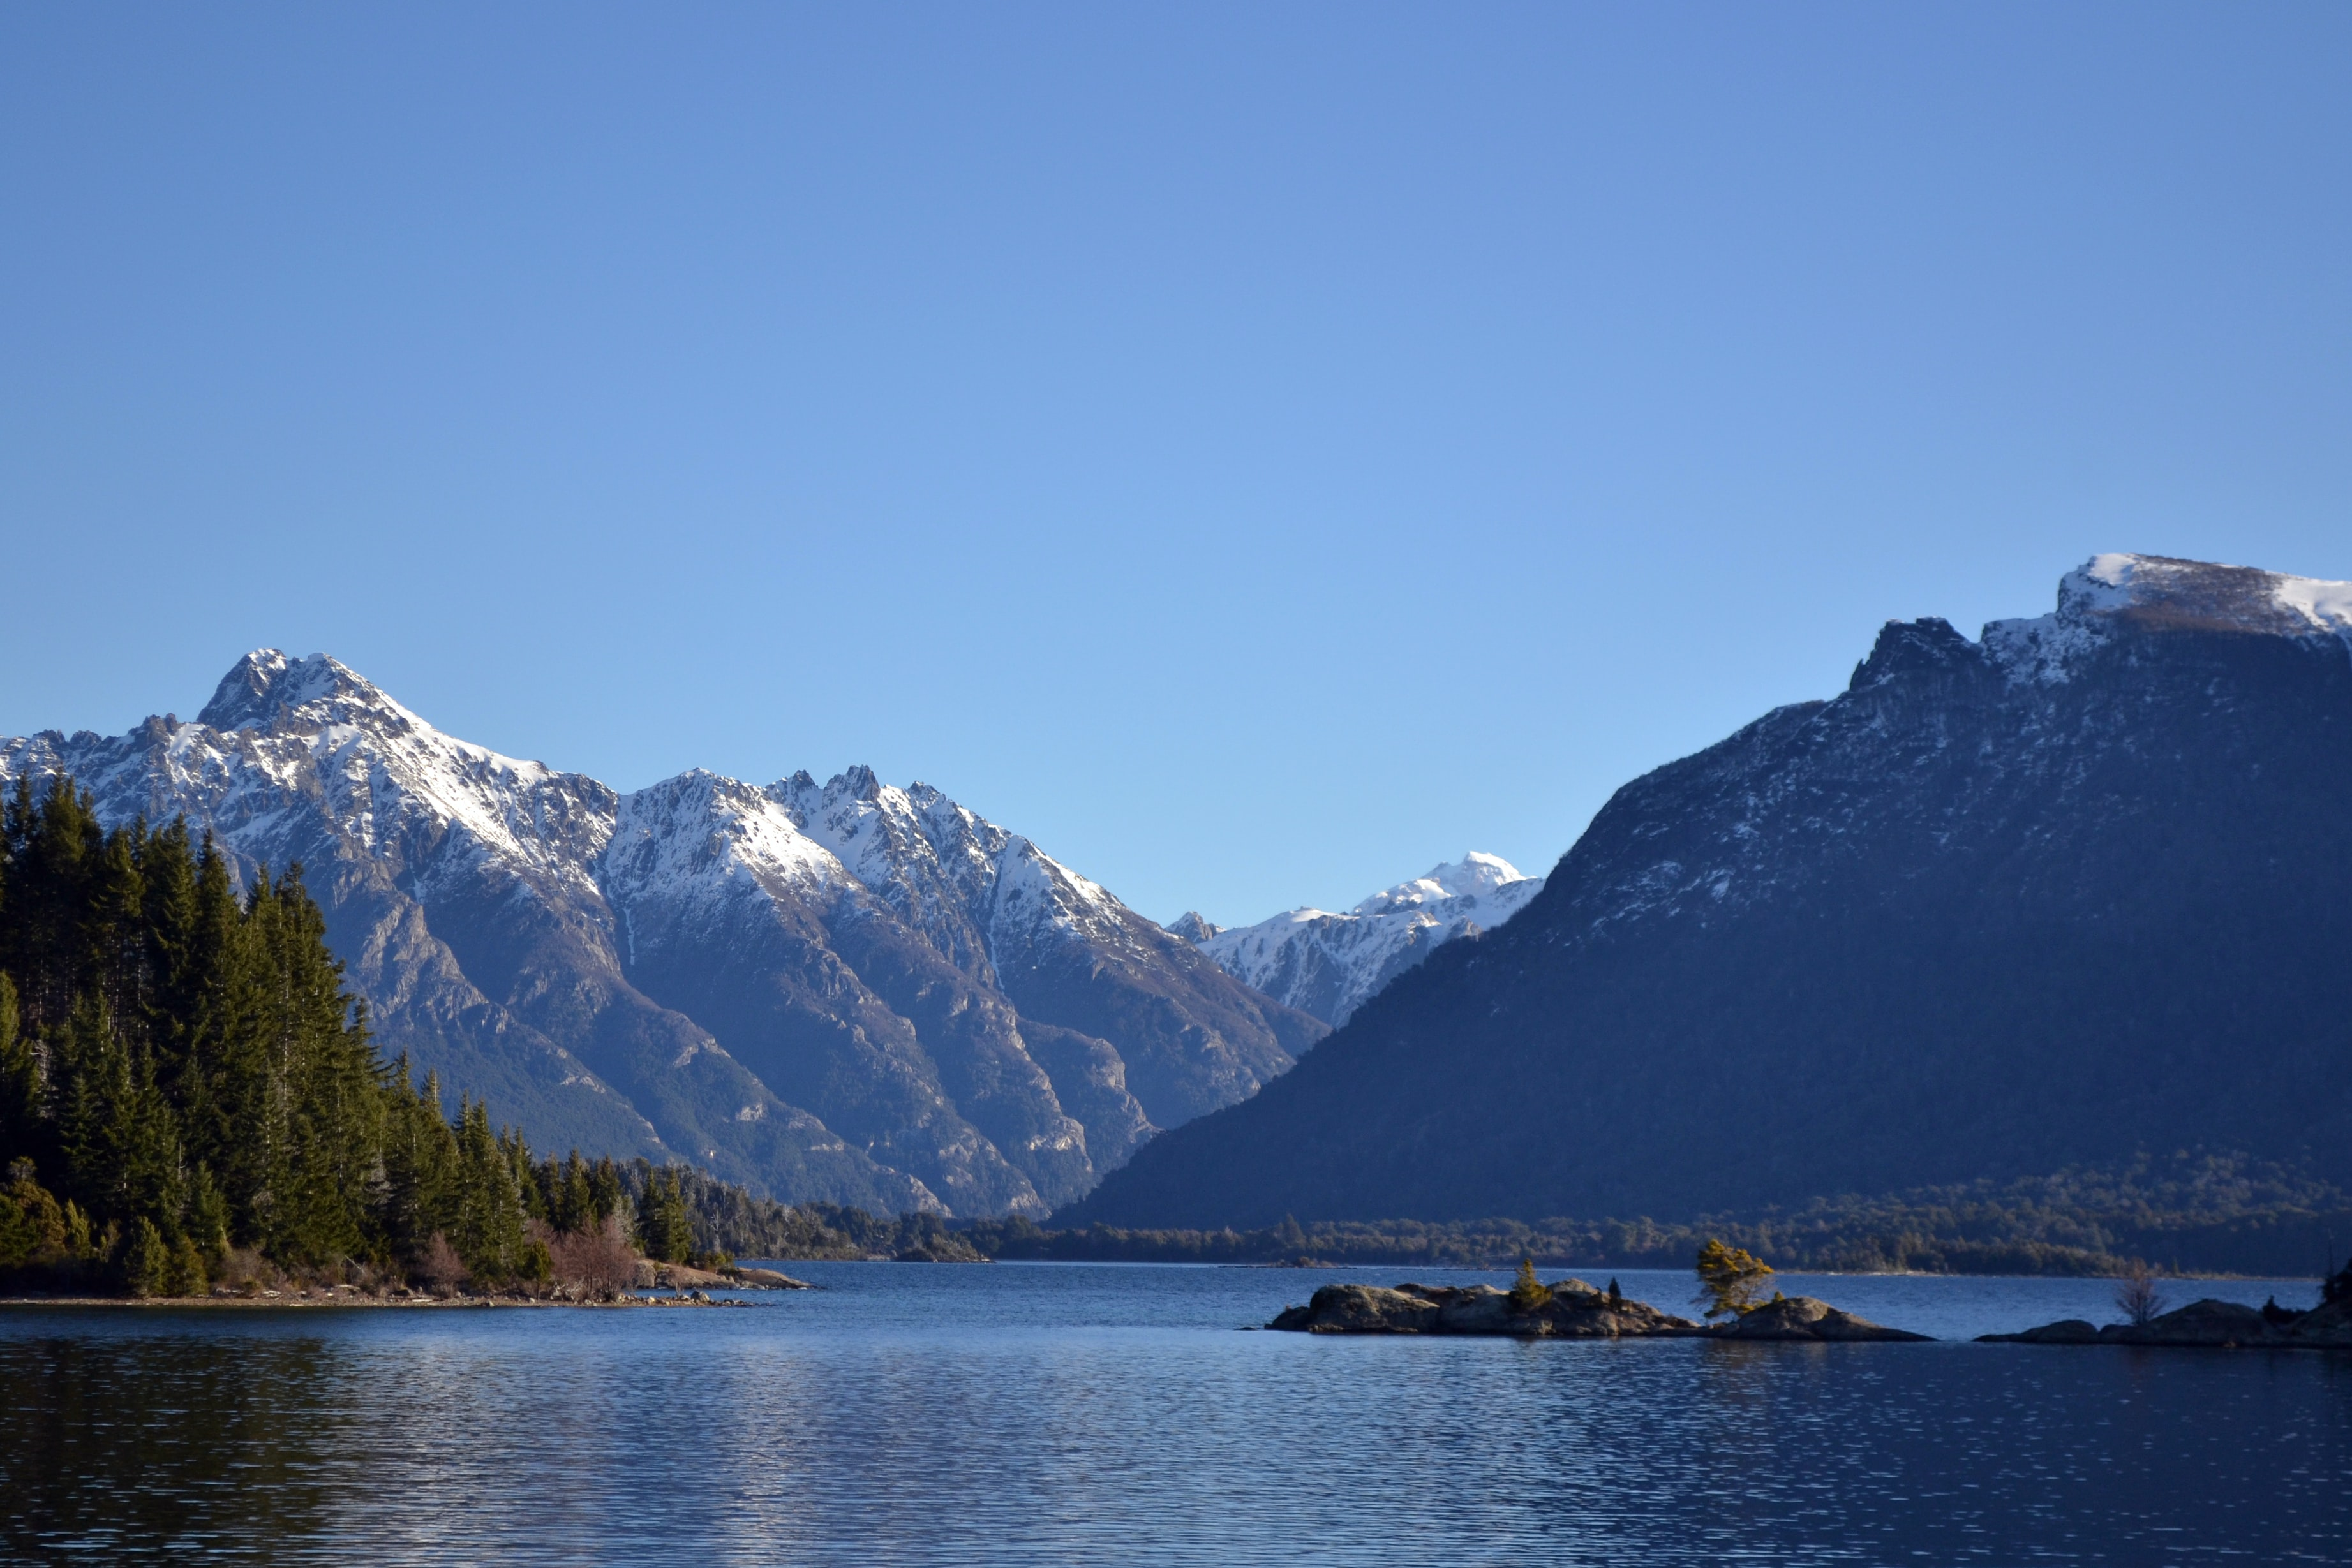 A lake at the foot of snowy mountains in Nahuel Huapi